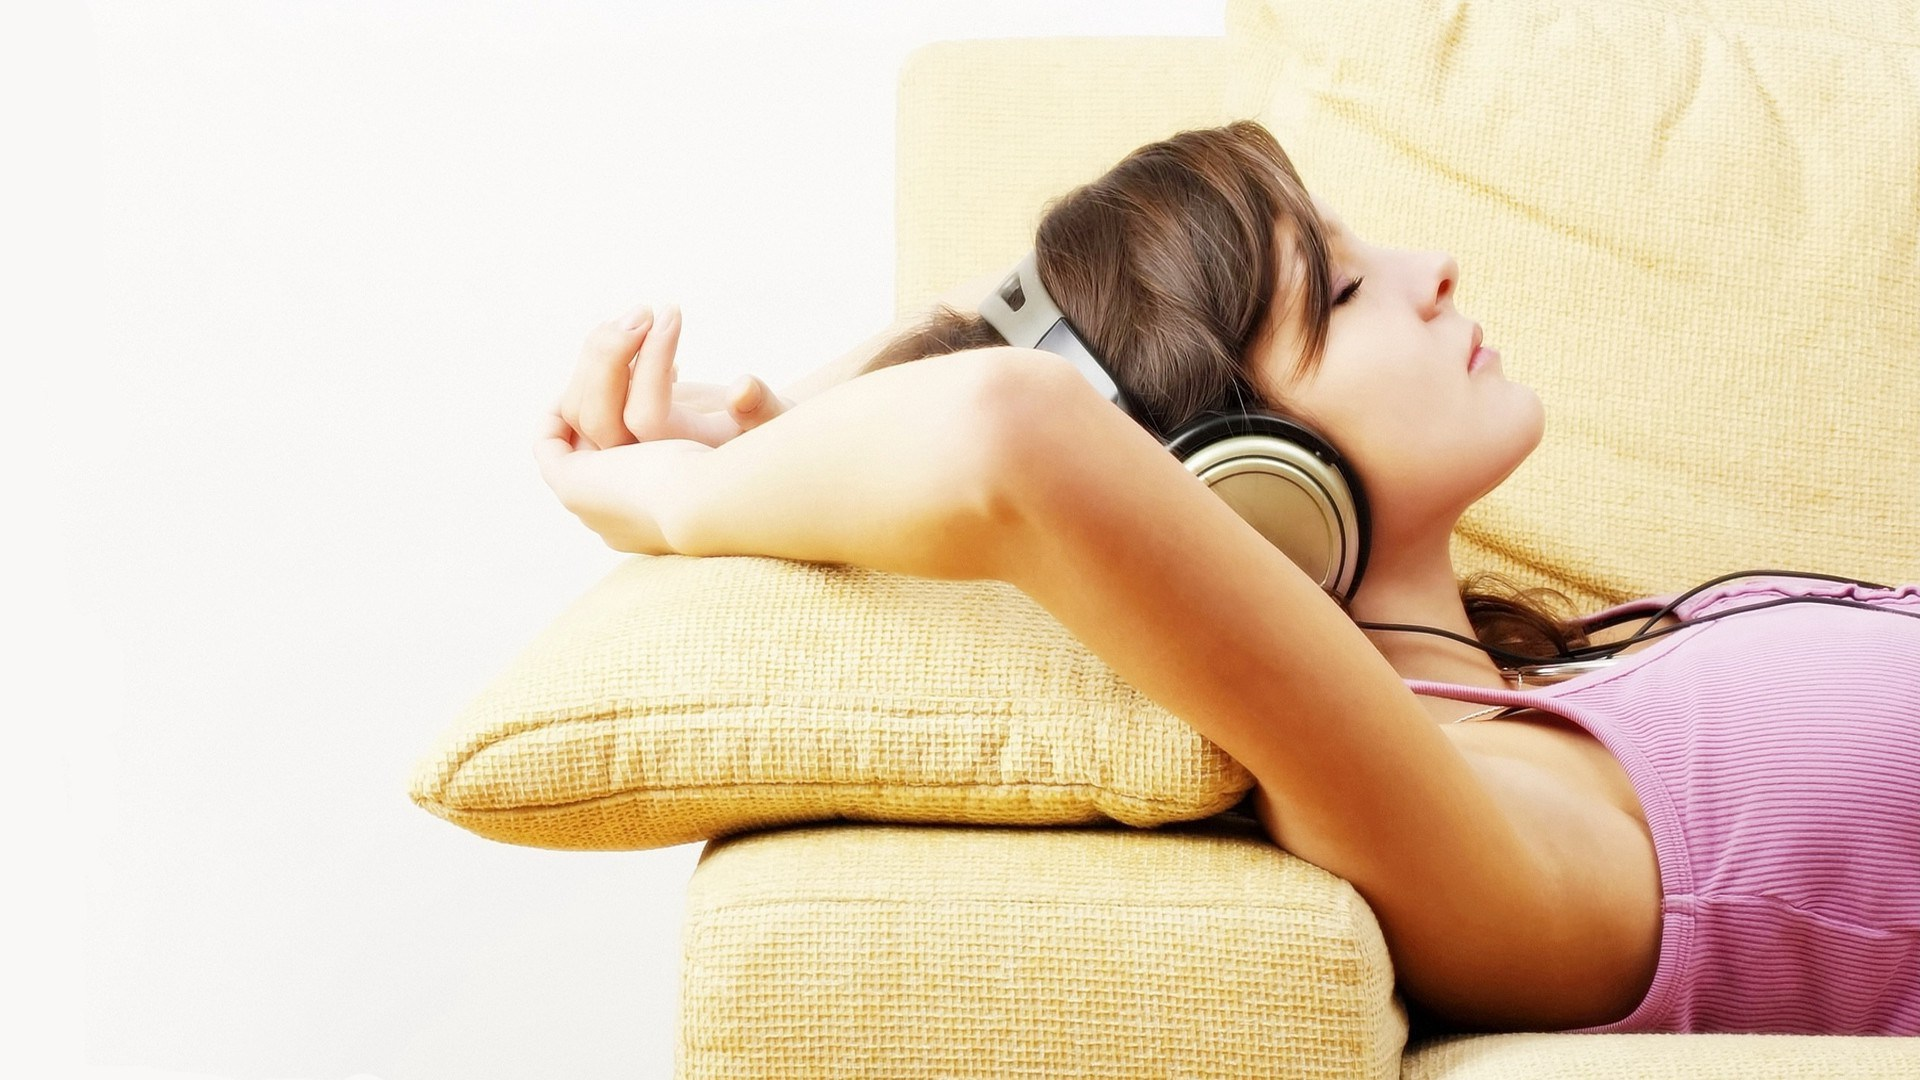 Top 5 Most Relaxing Songs for Pleasurable Evening